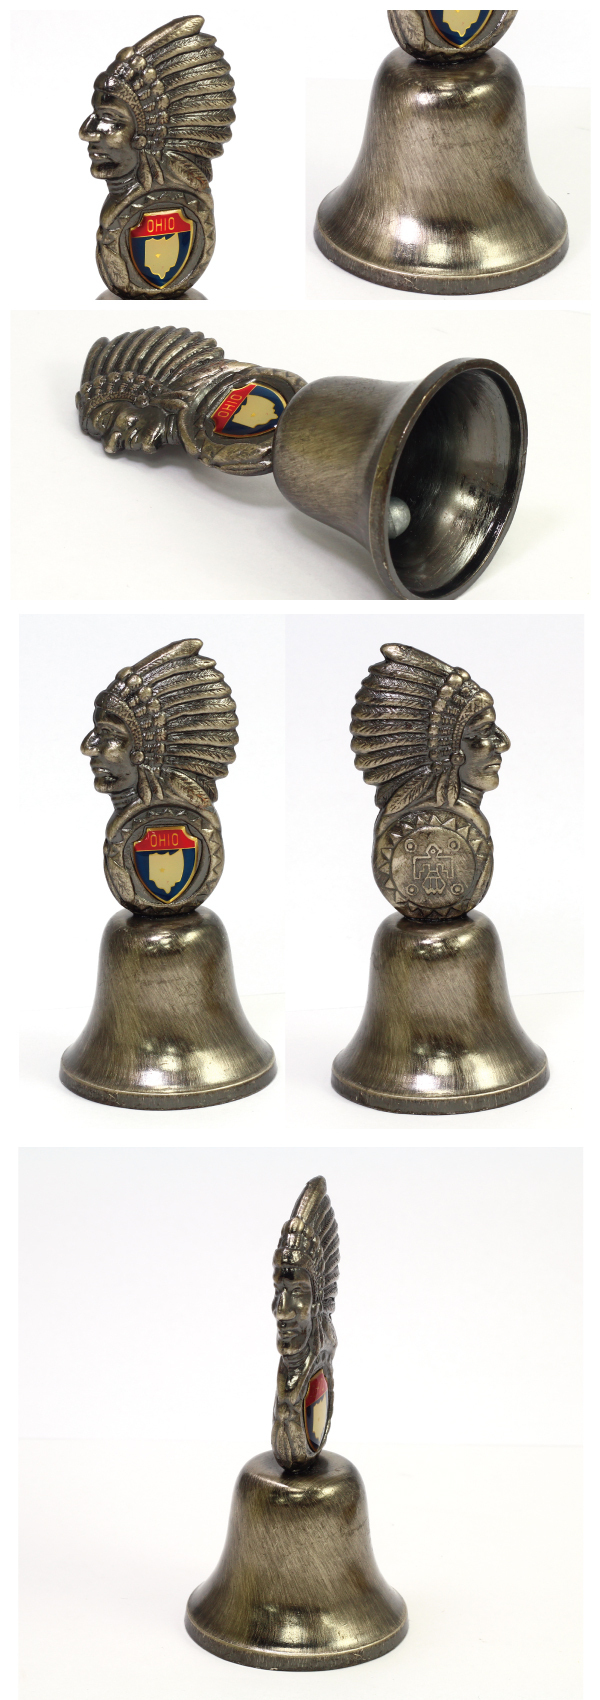 Wholesale custom design Indians metal call bell/meal bell